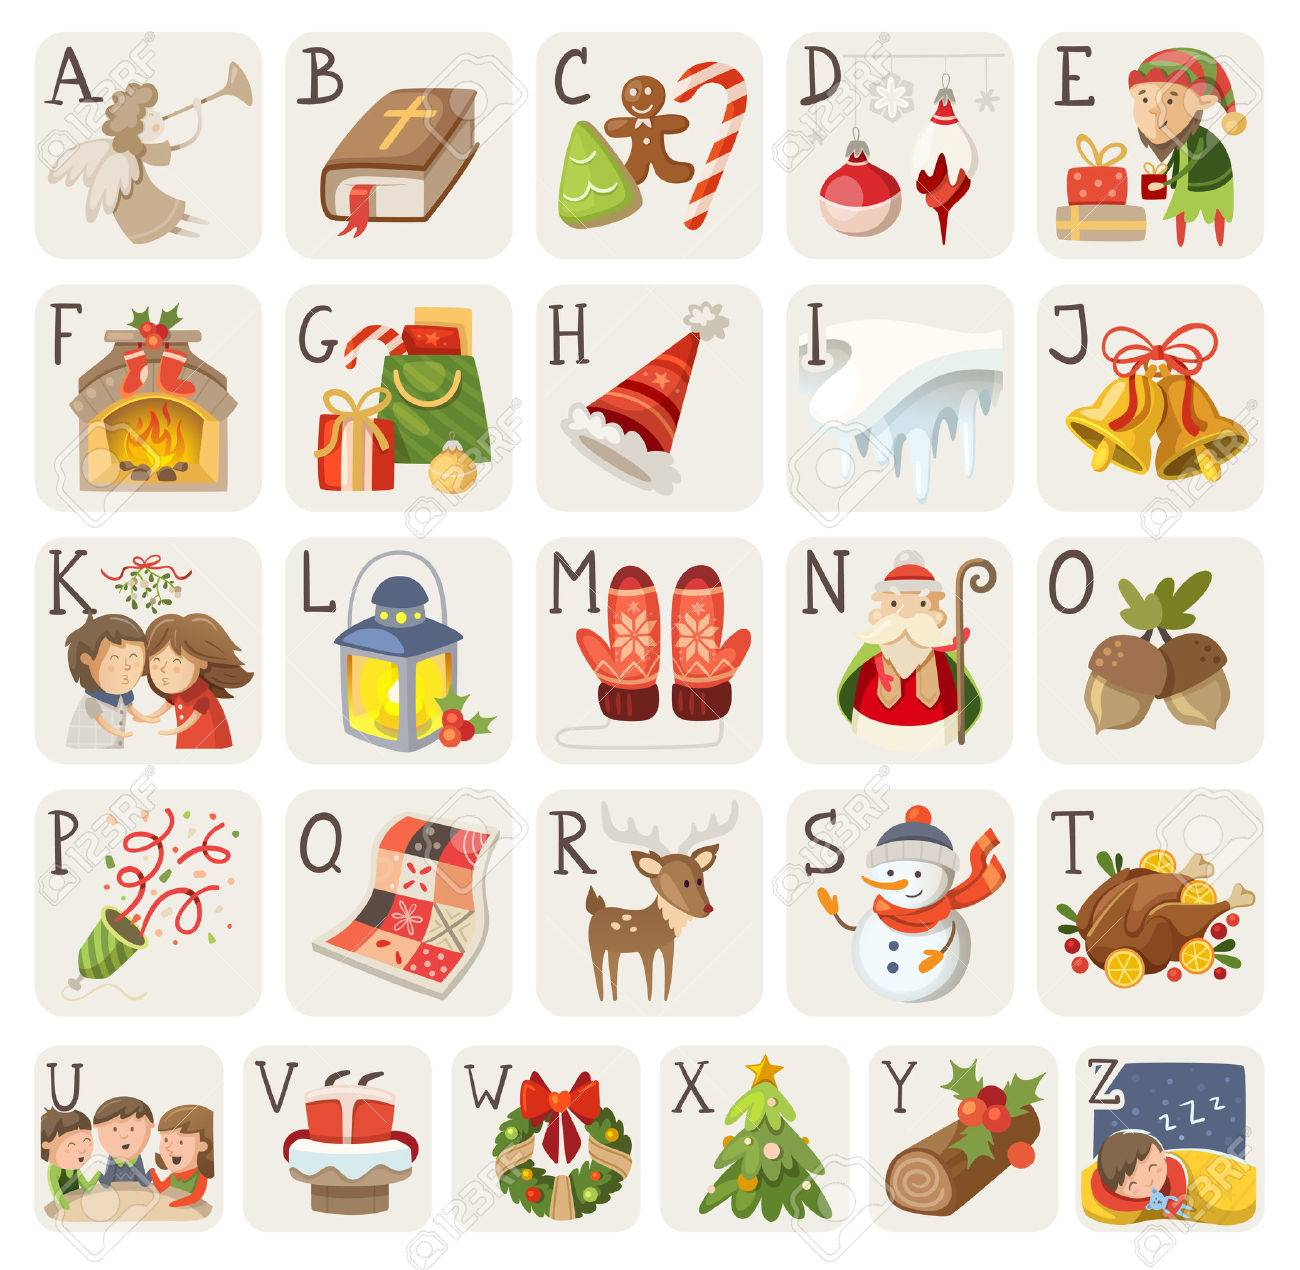 Christmas Items.Set Of Christmas Items Characters And Situations In Alphabet